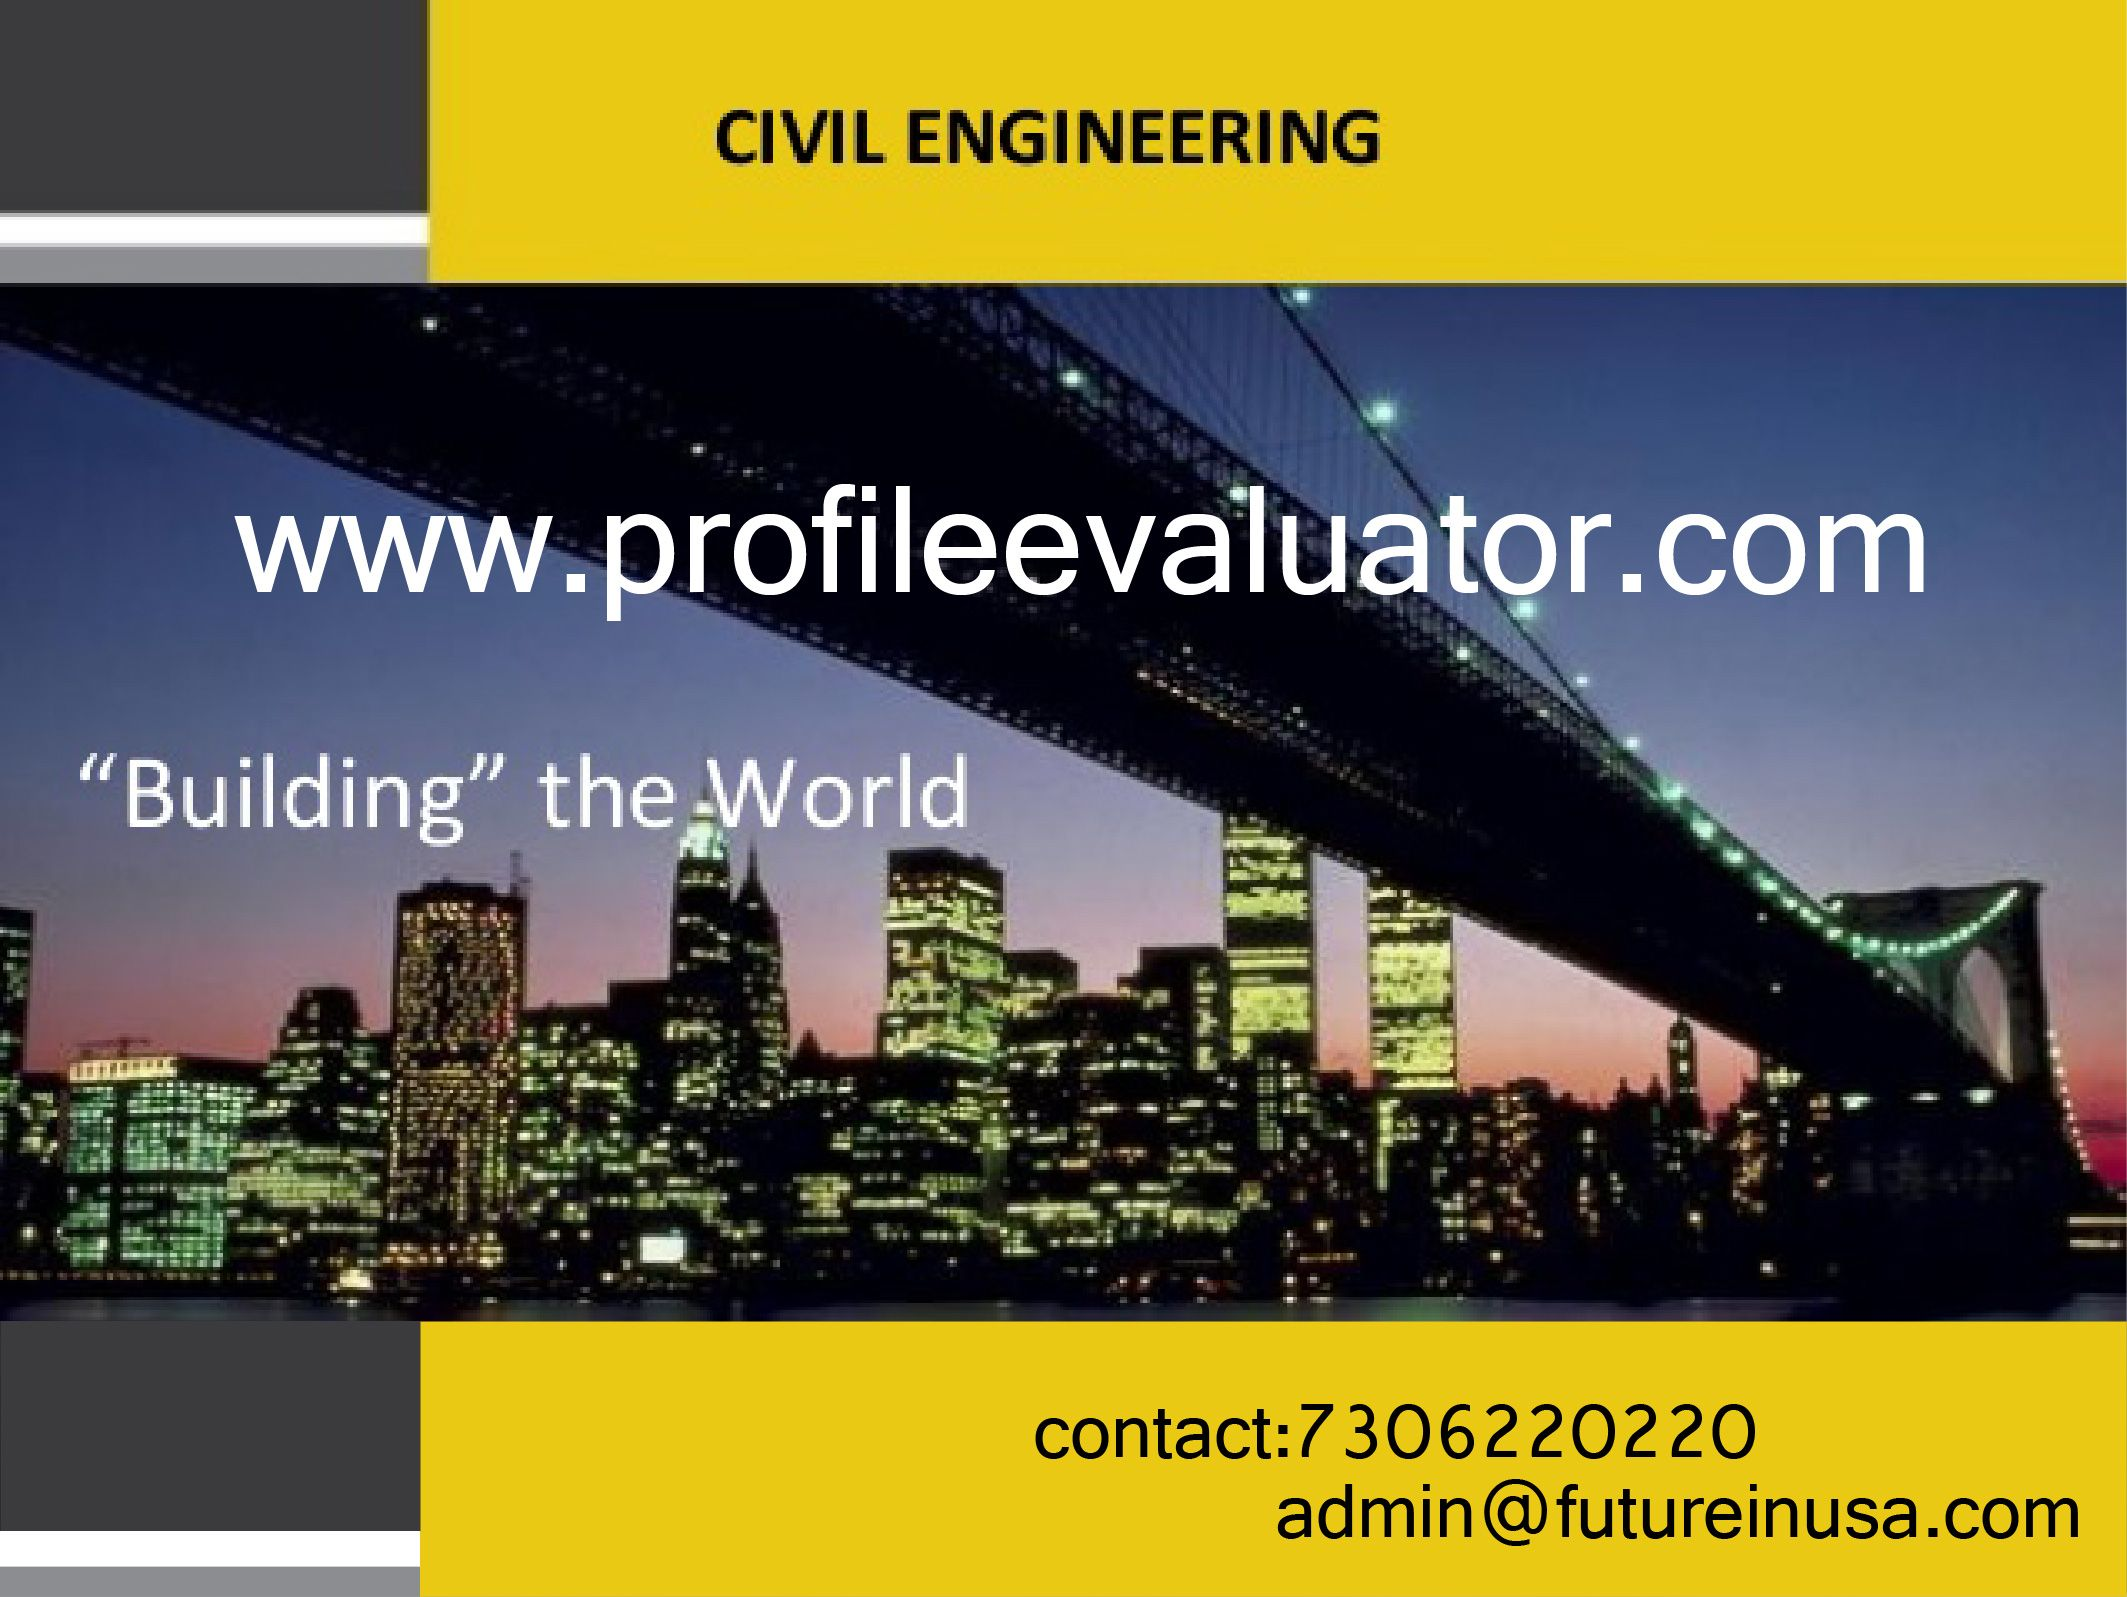 Study Ms In Civil Engineering And Construction At Universities Or